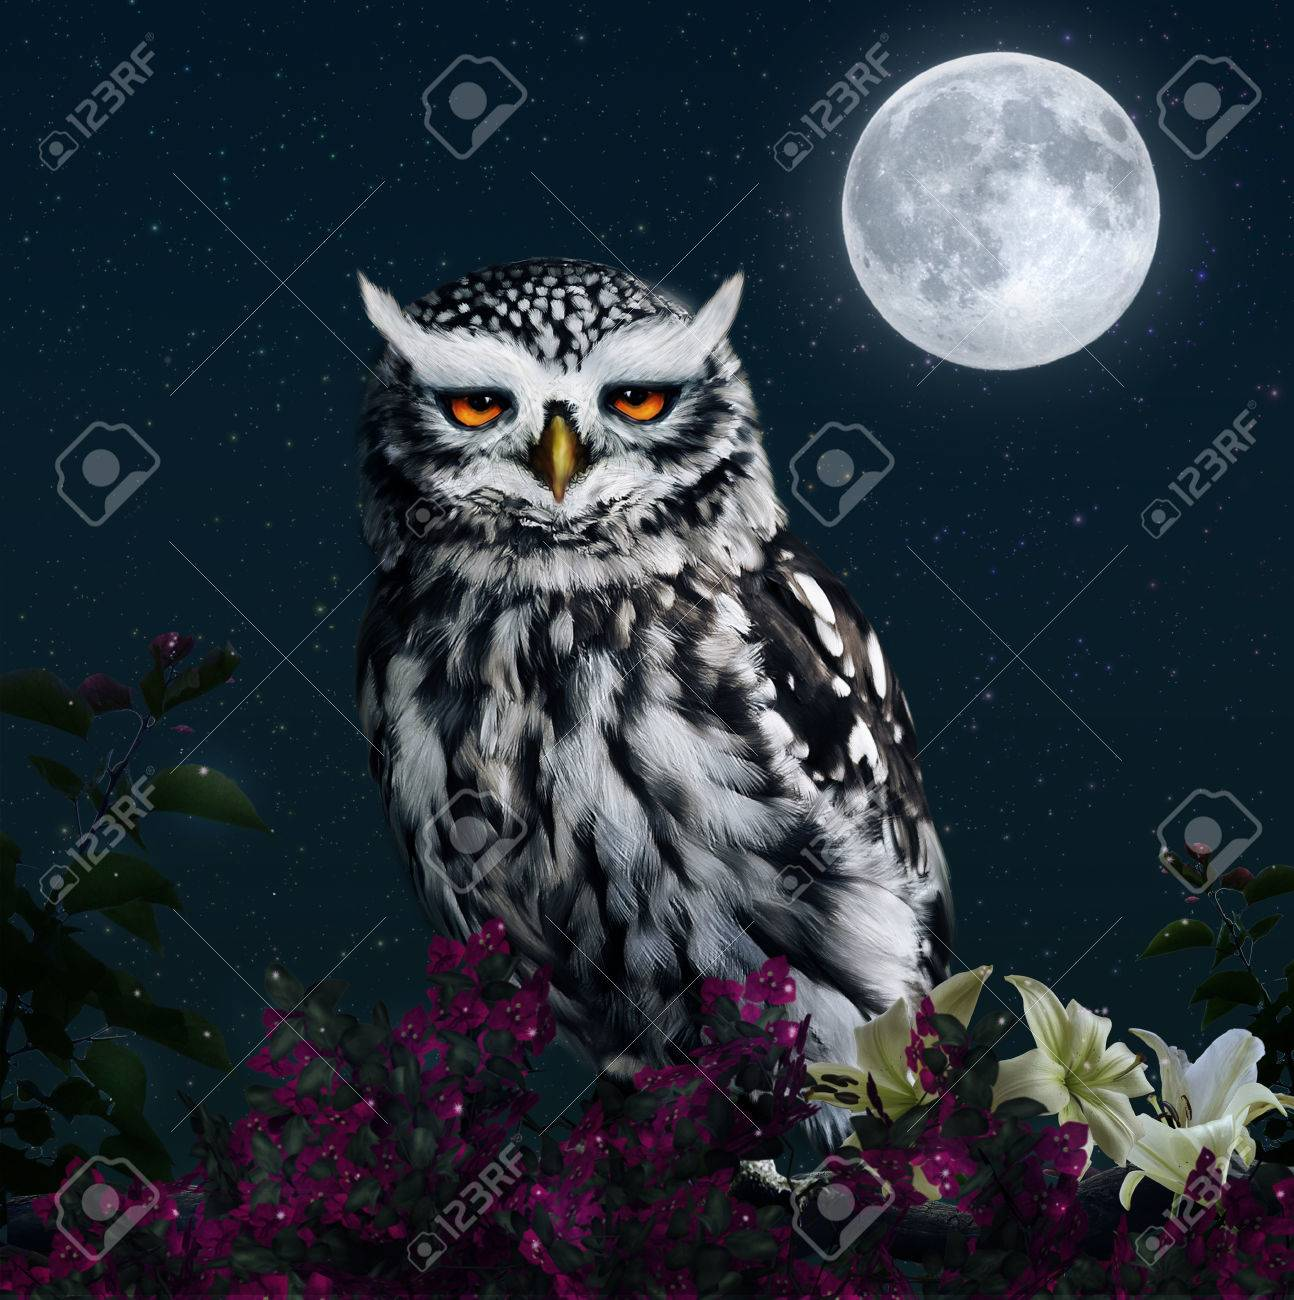 Photomanipulation of an owl at night with full moon - 30840768